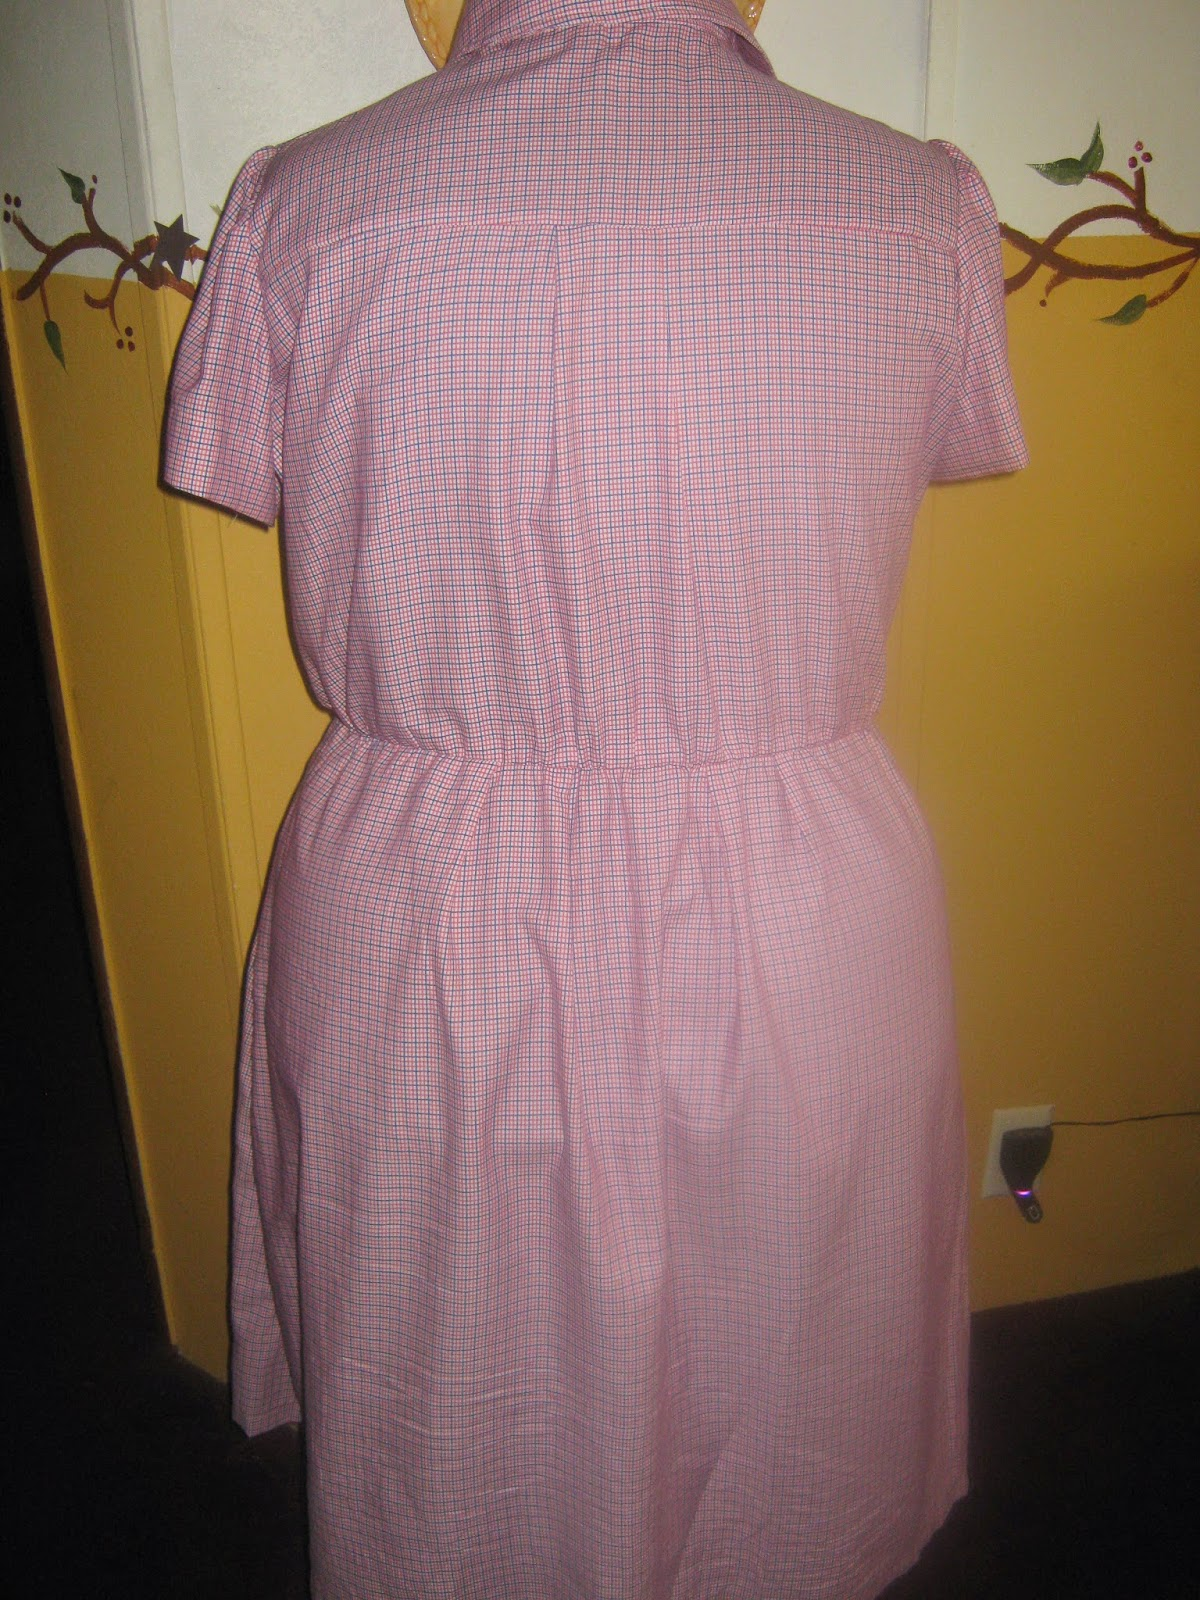 New Look A6180 Shirt Dress Back View www.sewplus.blogspot.com